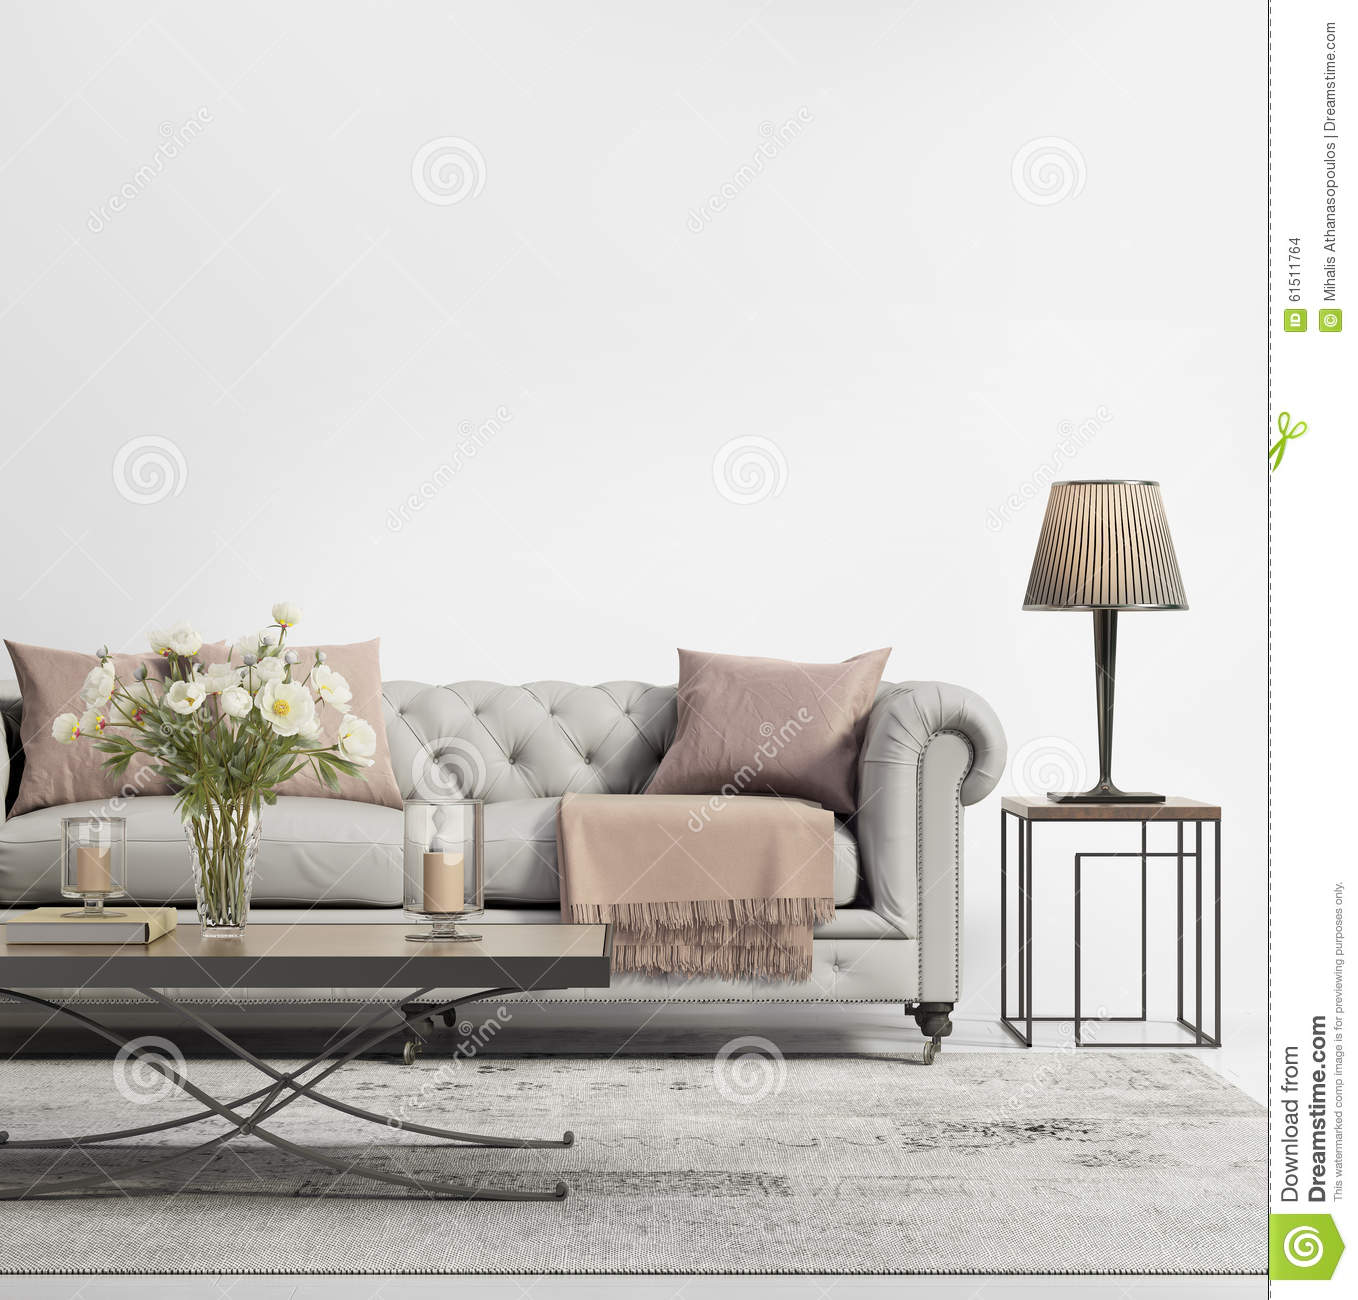 Contemporary Elegant Chic Living Room With Grey Tufted